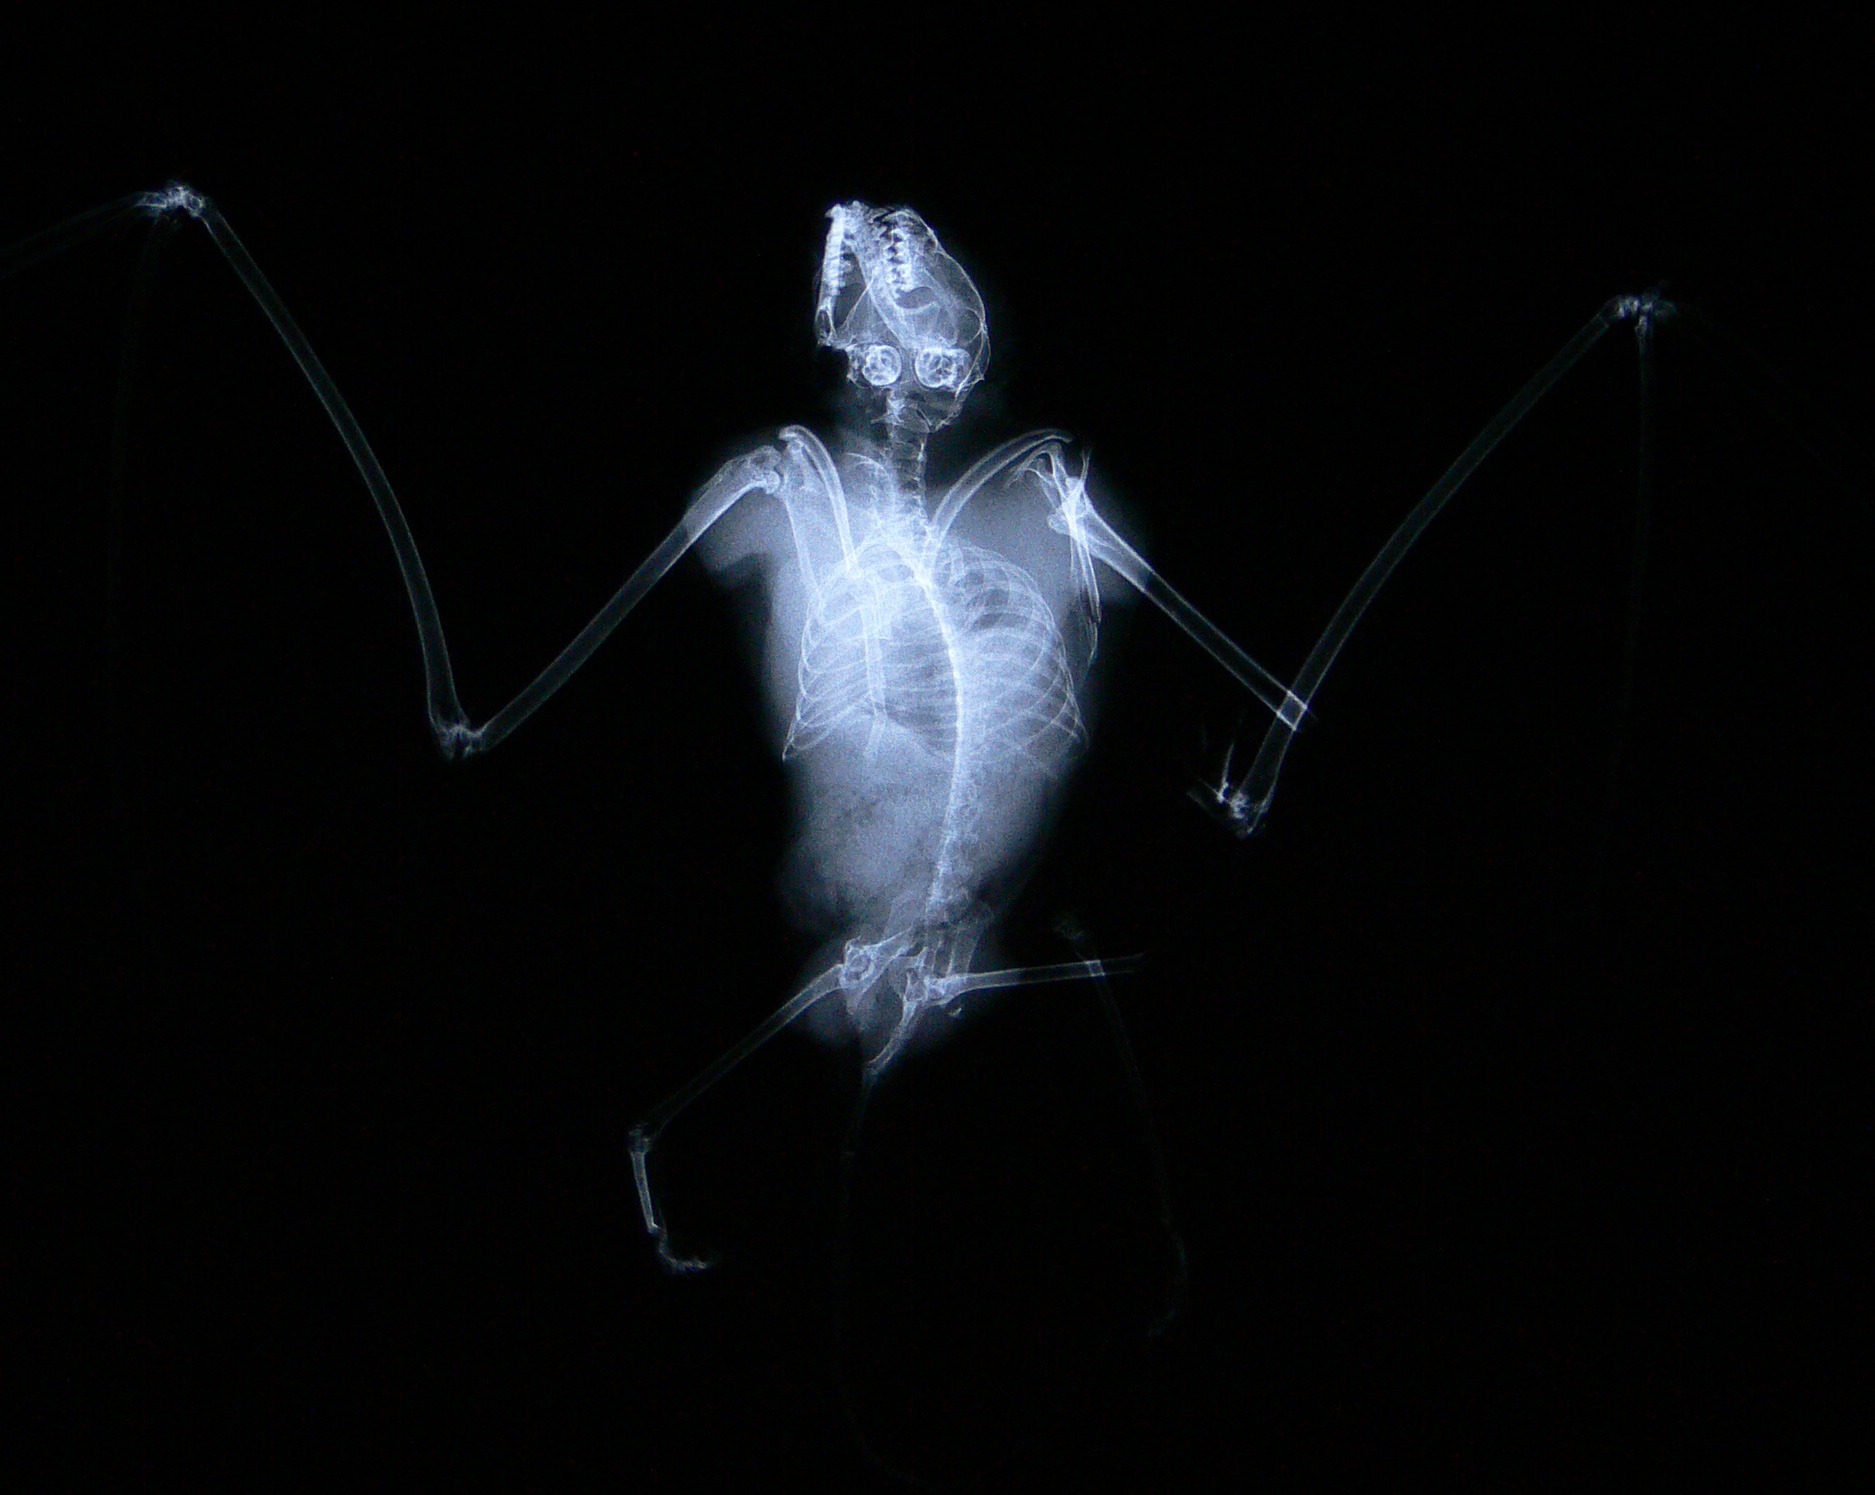 Radiograph of a dead bat collected under a wind turbine. The compound fracture in the wing is indicative of direct collision with turbine blades. Radiograph taken by Nicole Walrath.